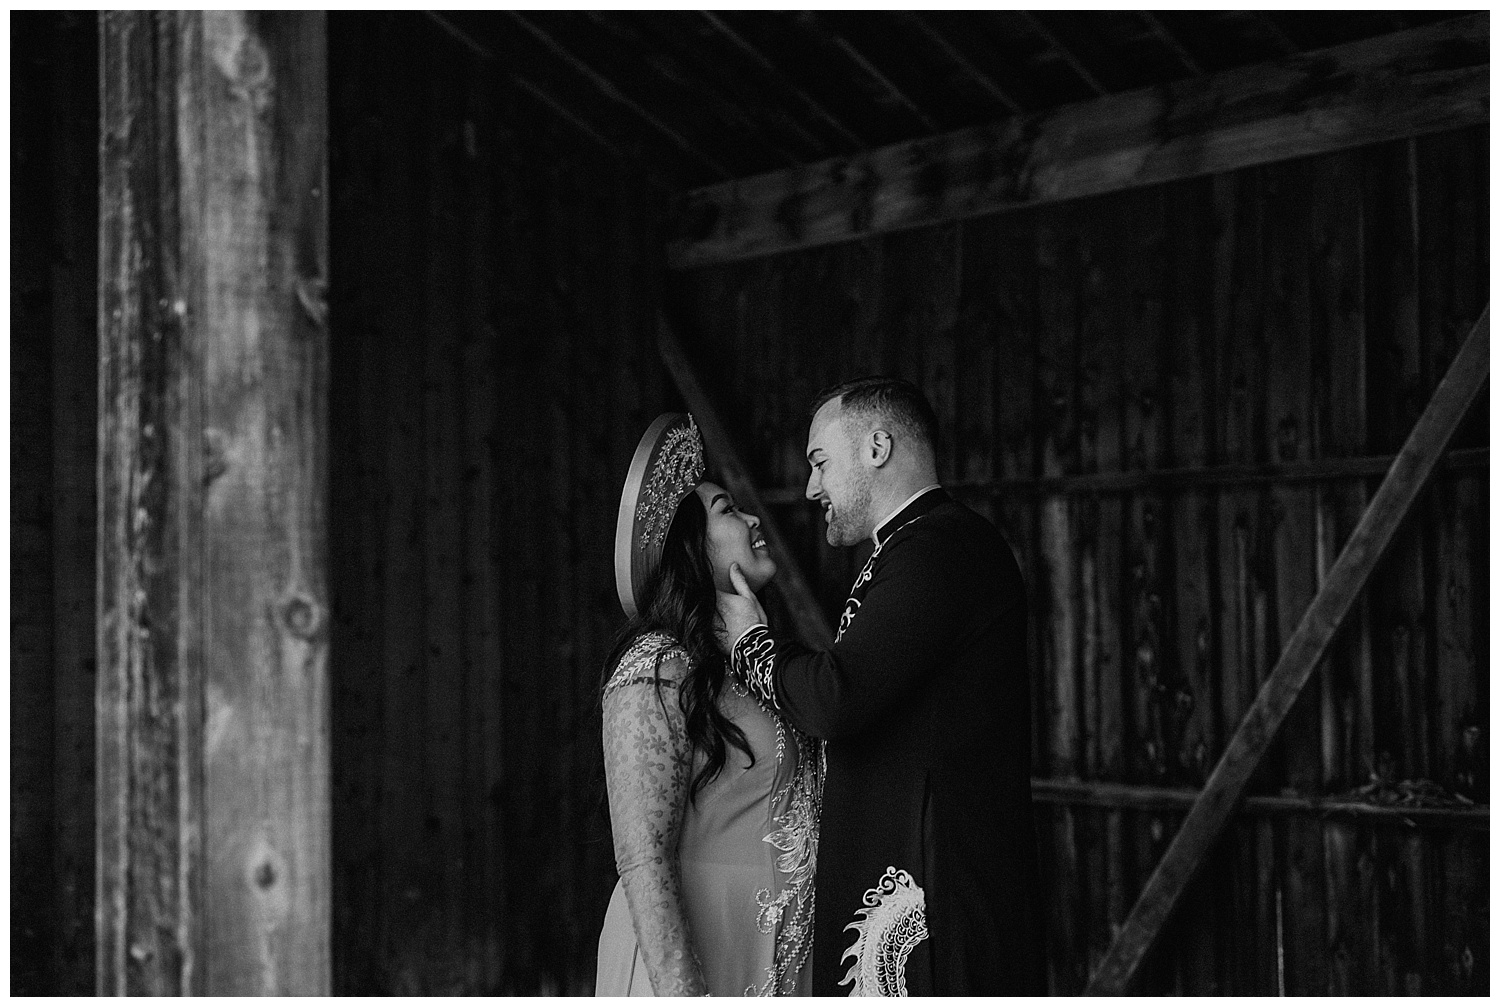 Katie Marie Photography | Hamilton Ontario Wedding Photographer | Hamilton Engagement Session | HamOnt | Vietnamese Engagement Session | Traditional Outfit Engagement Session | Dundurn Castle_0008.jpg